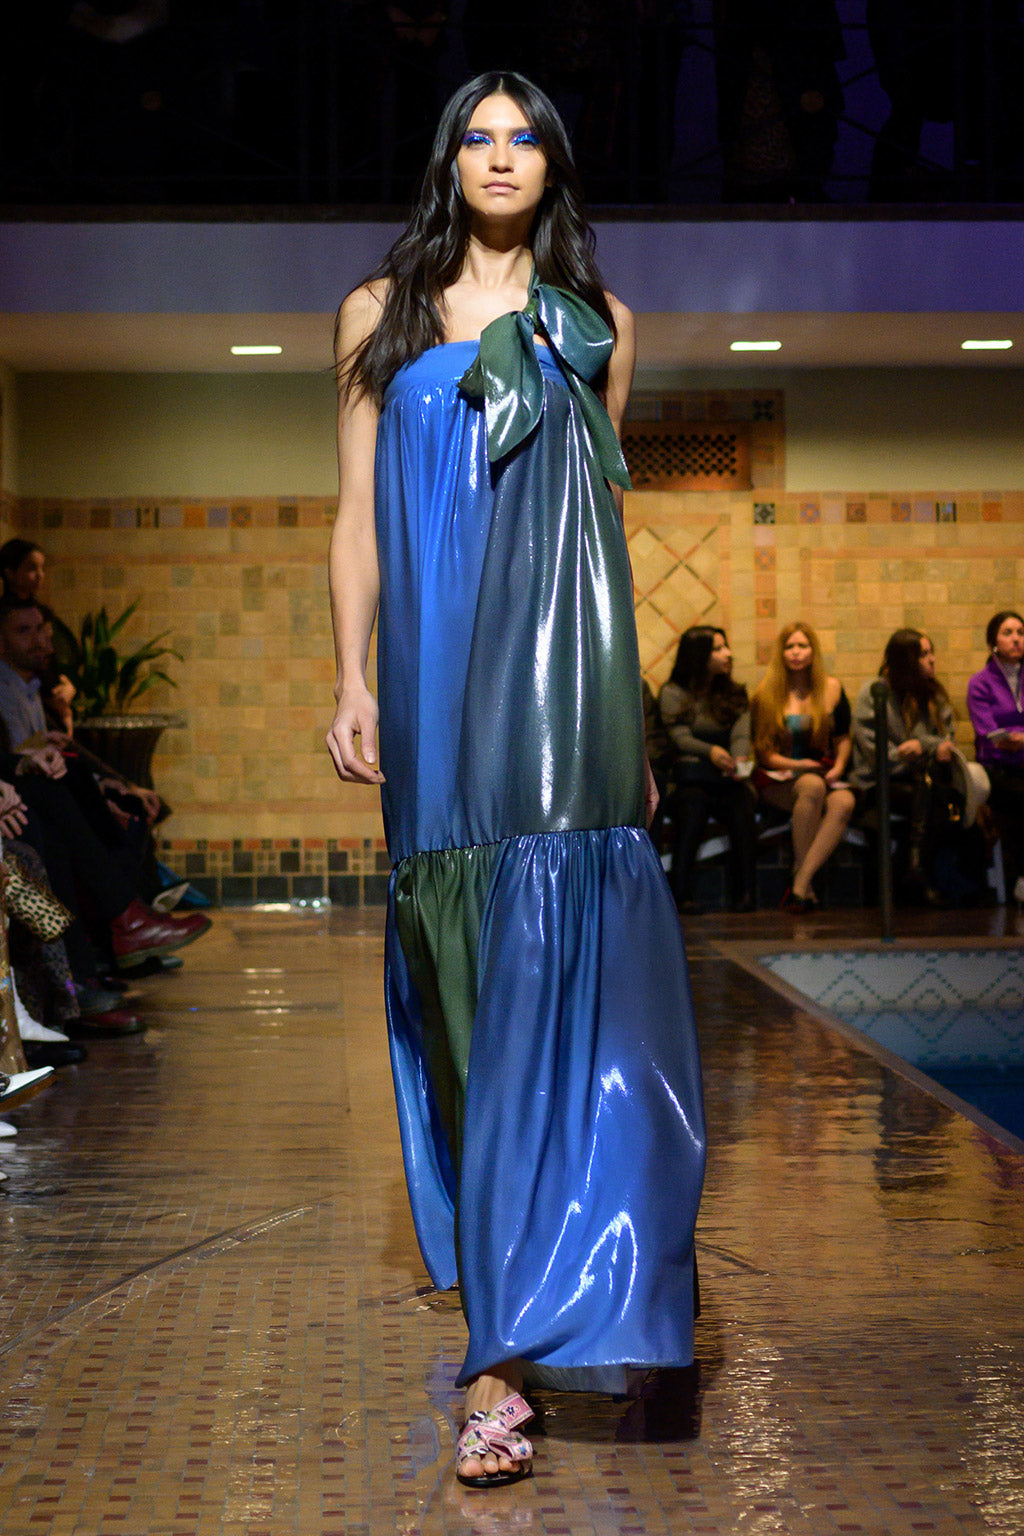 Cynthia Rowley Fall 2019 look 36 featuring blue and green ombre maxi dress